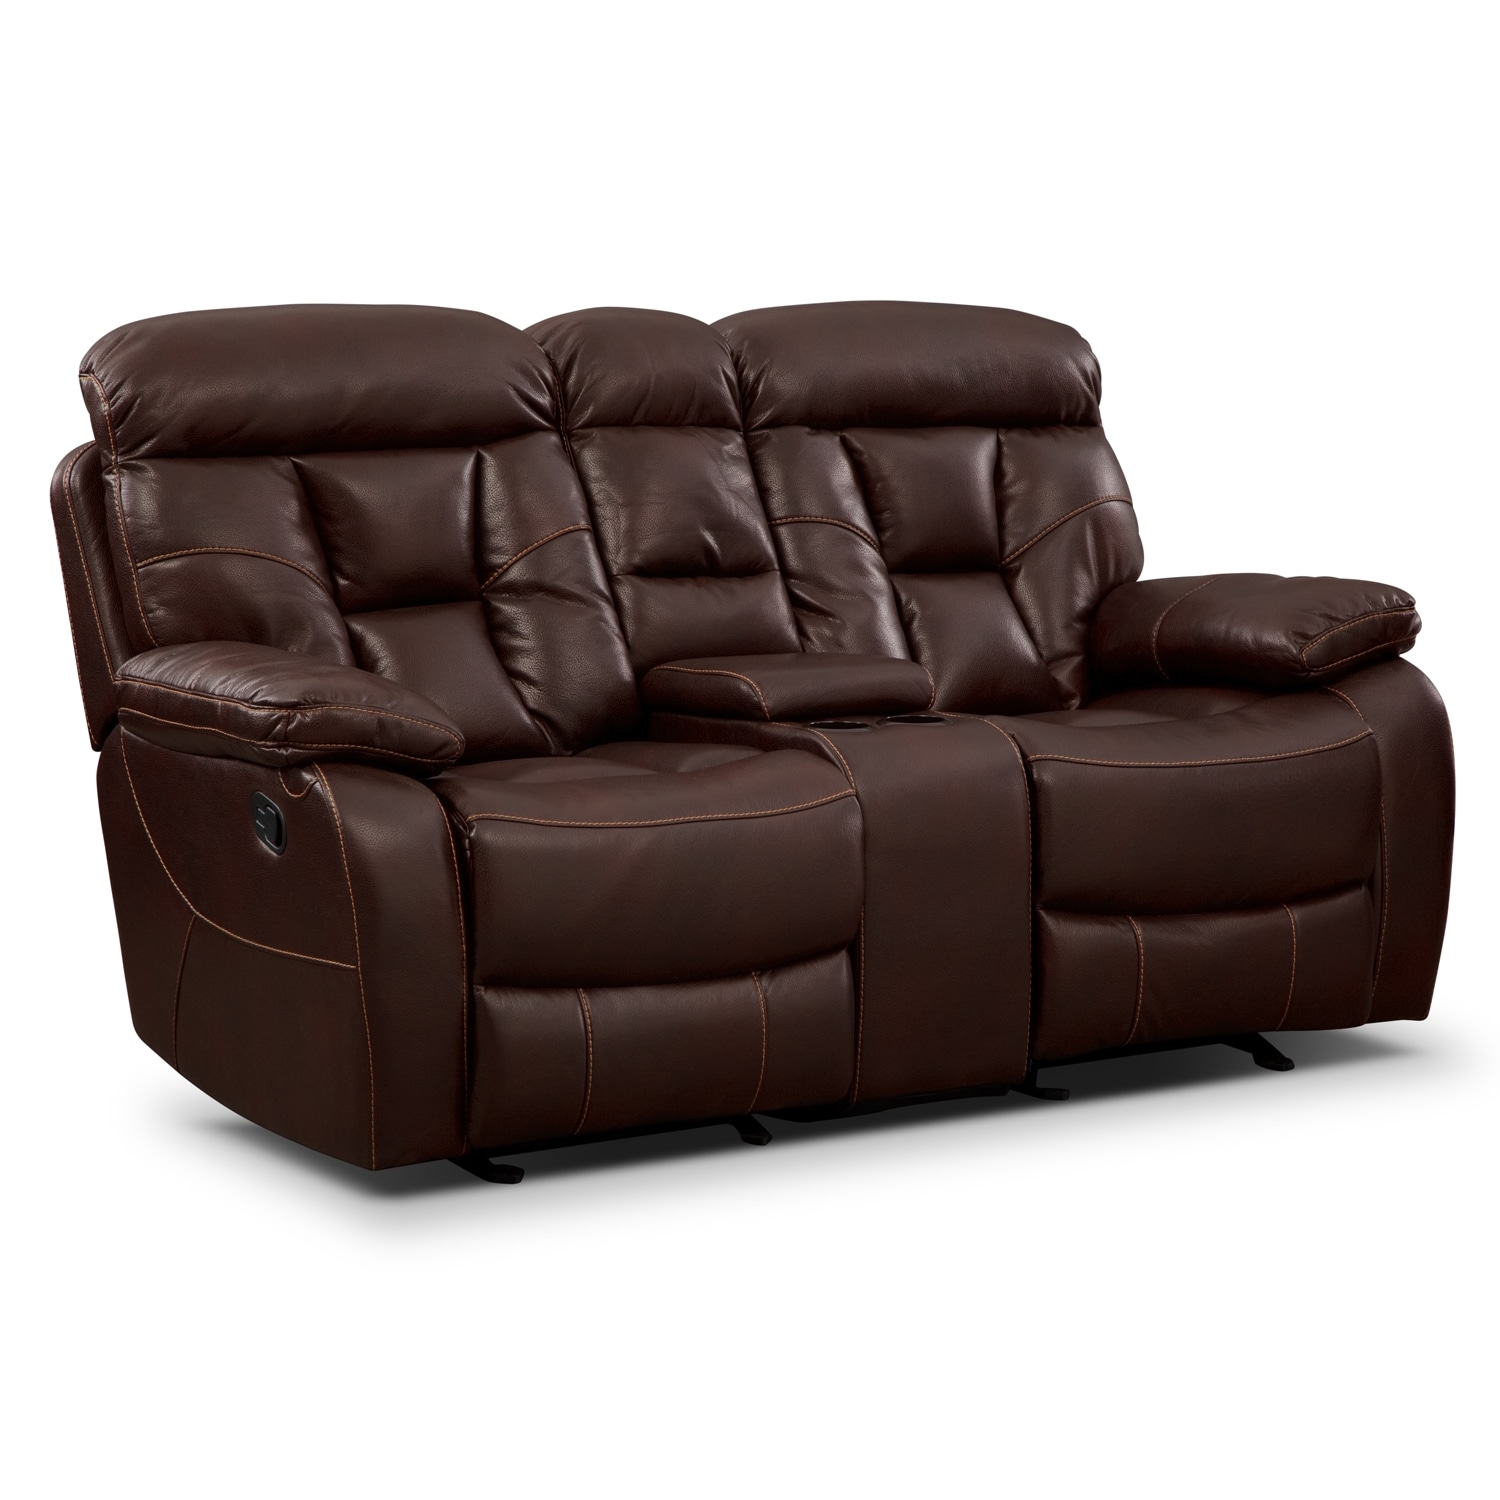 [Dakota Glider Reclining Loveseat with Console]